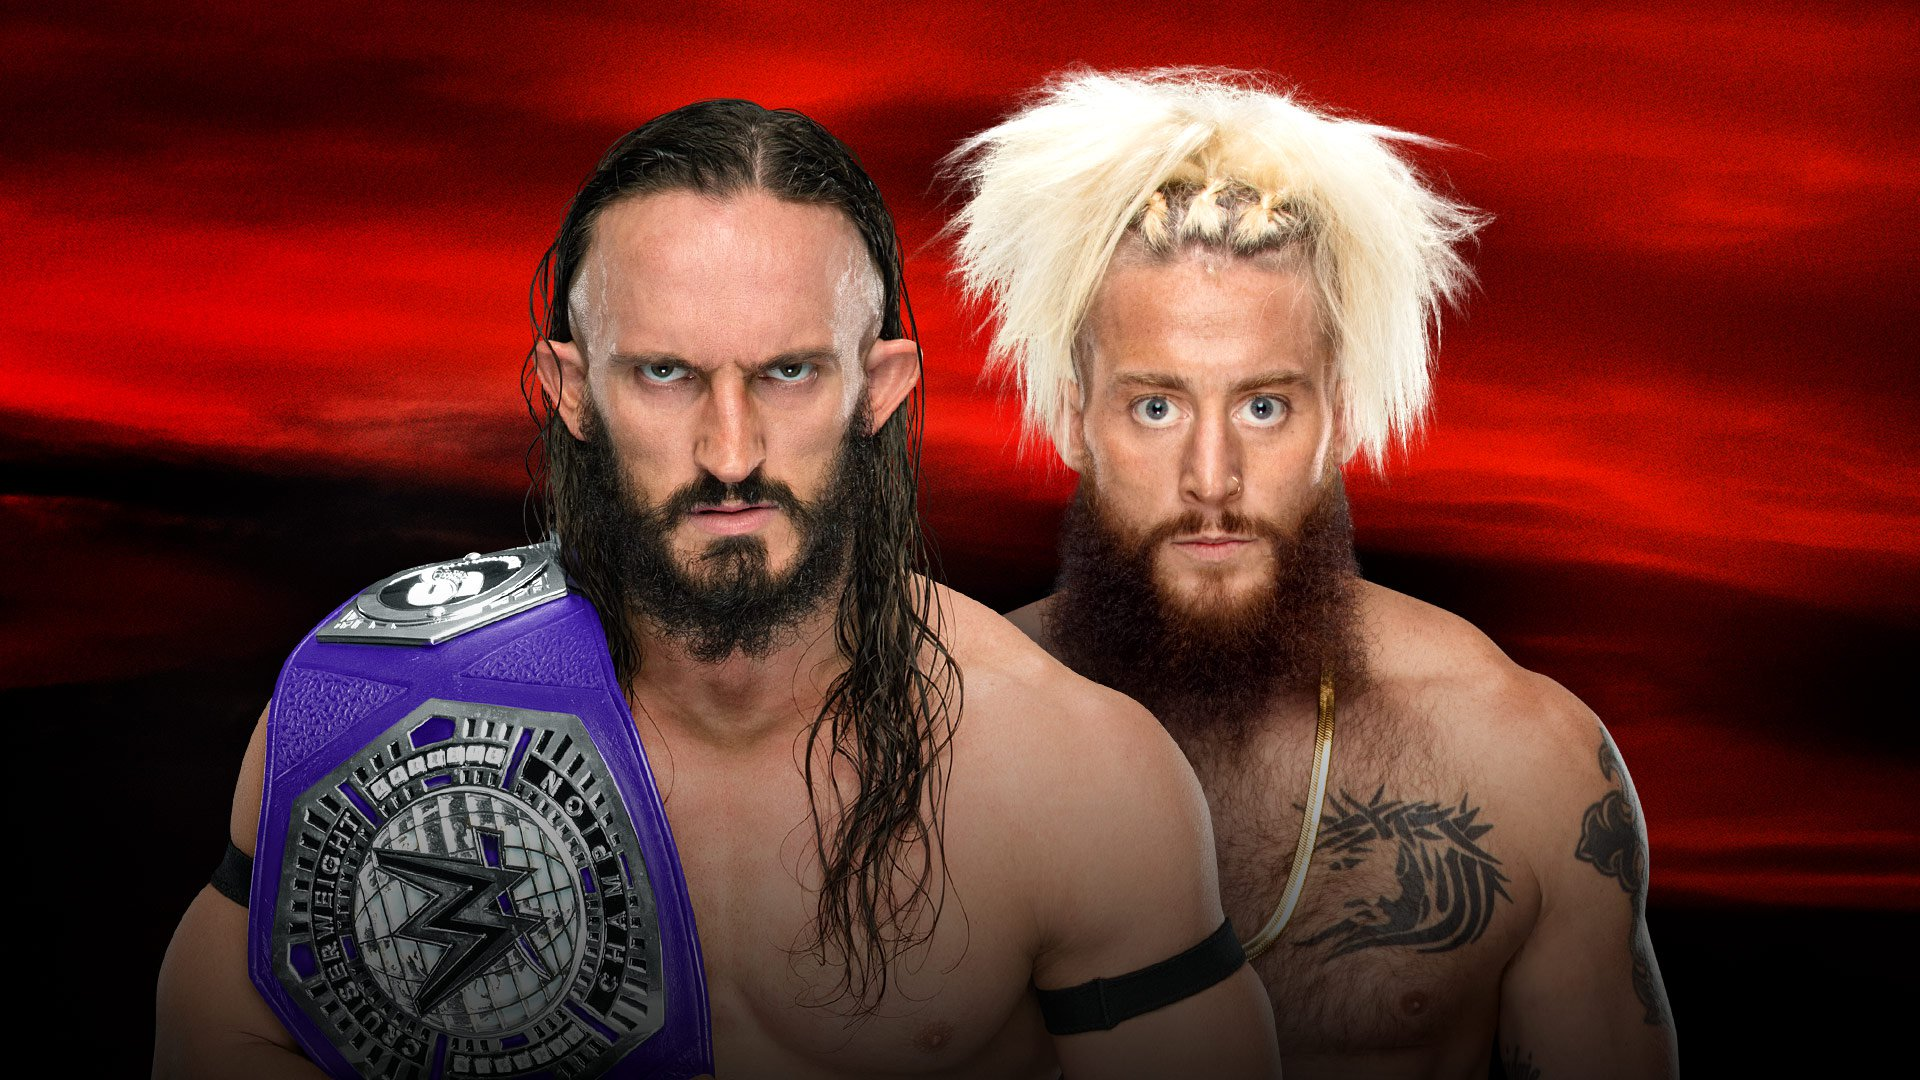 WWE No Mercy 2017: Neville vs. Enzo Amore